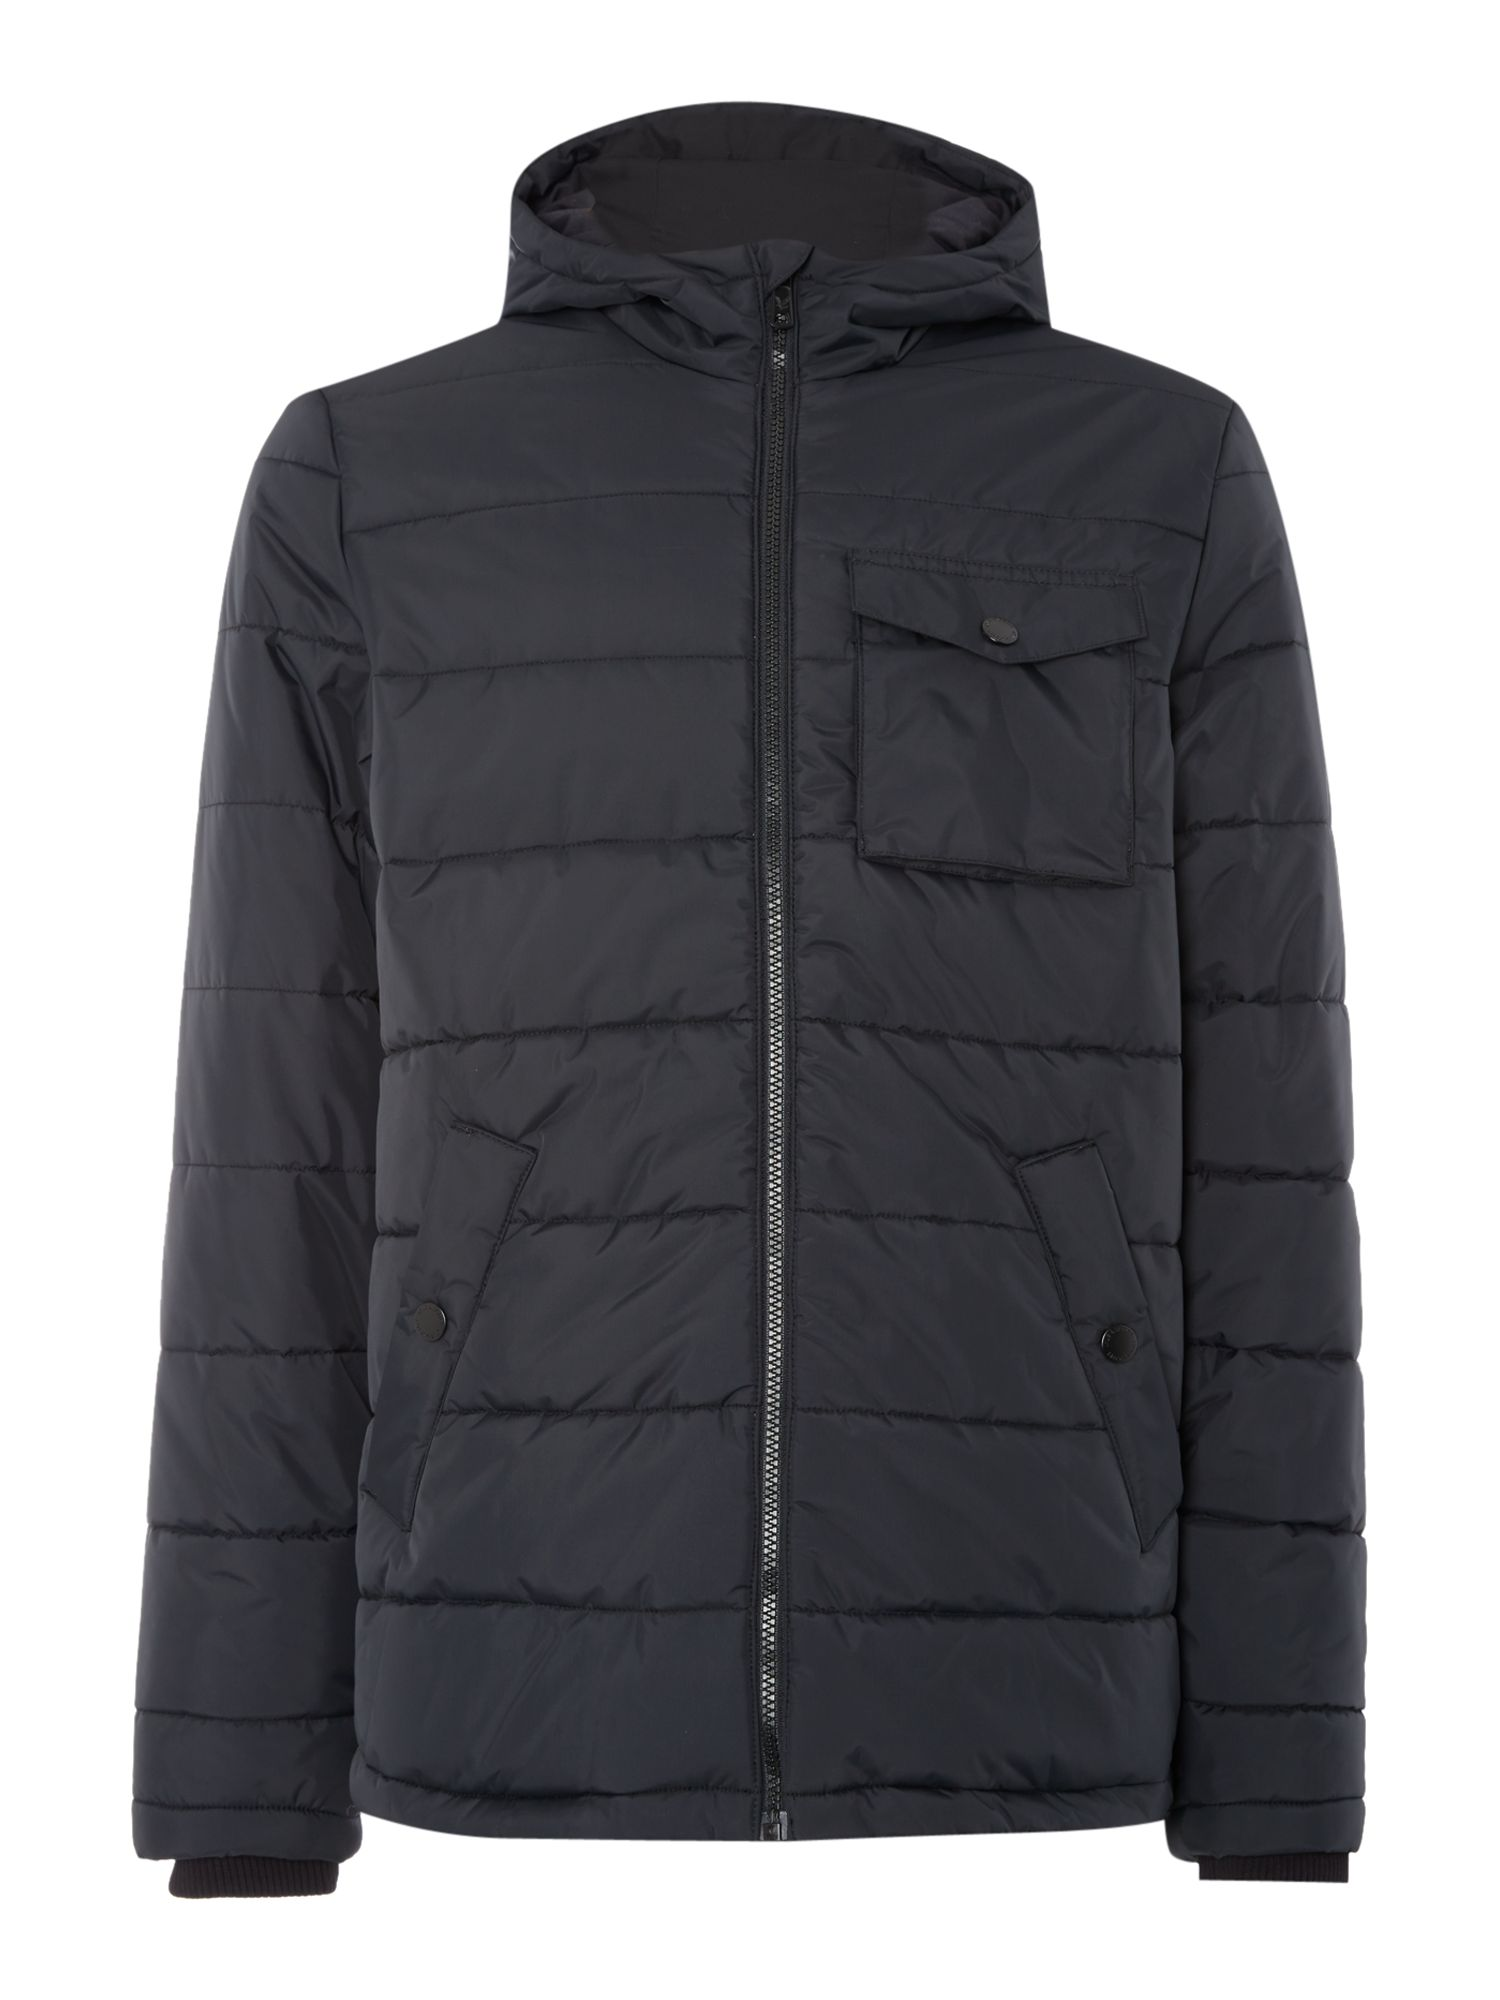 Mens Lyle and Scott Padded Casual Fulll Zip Parka Coat Black